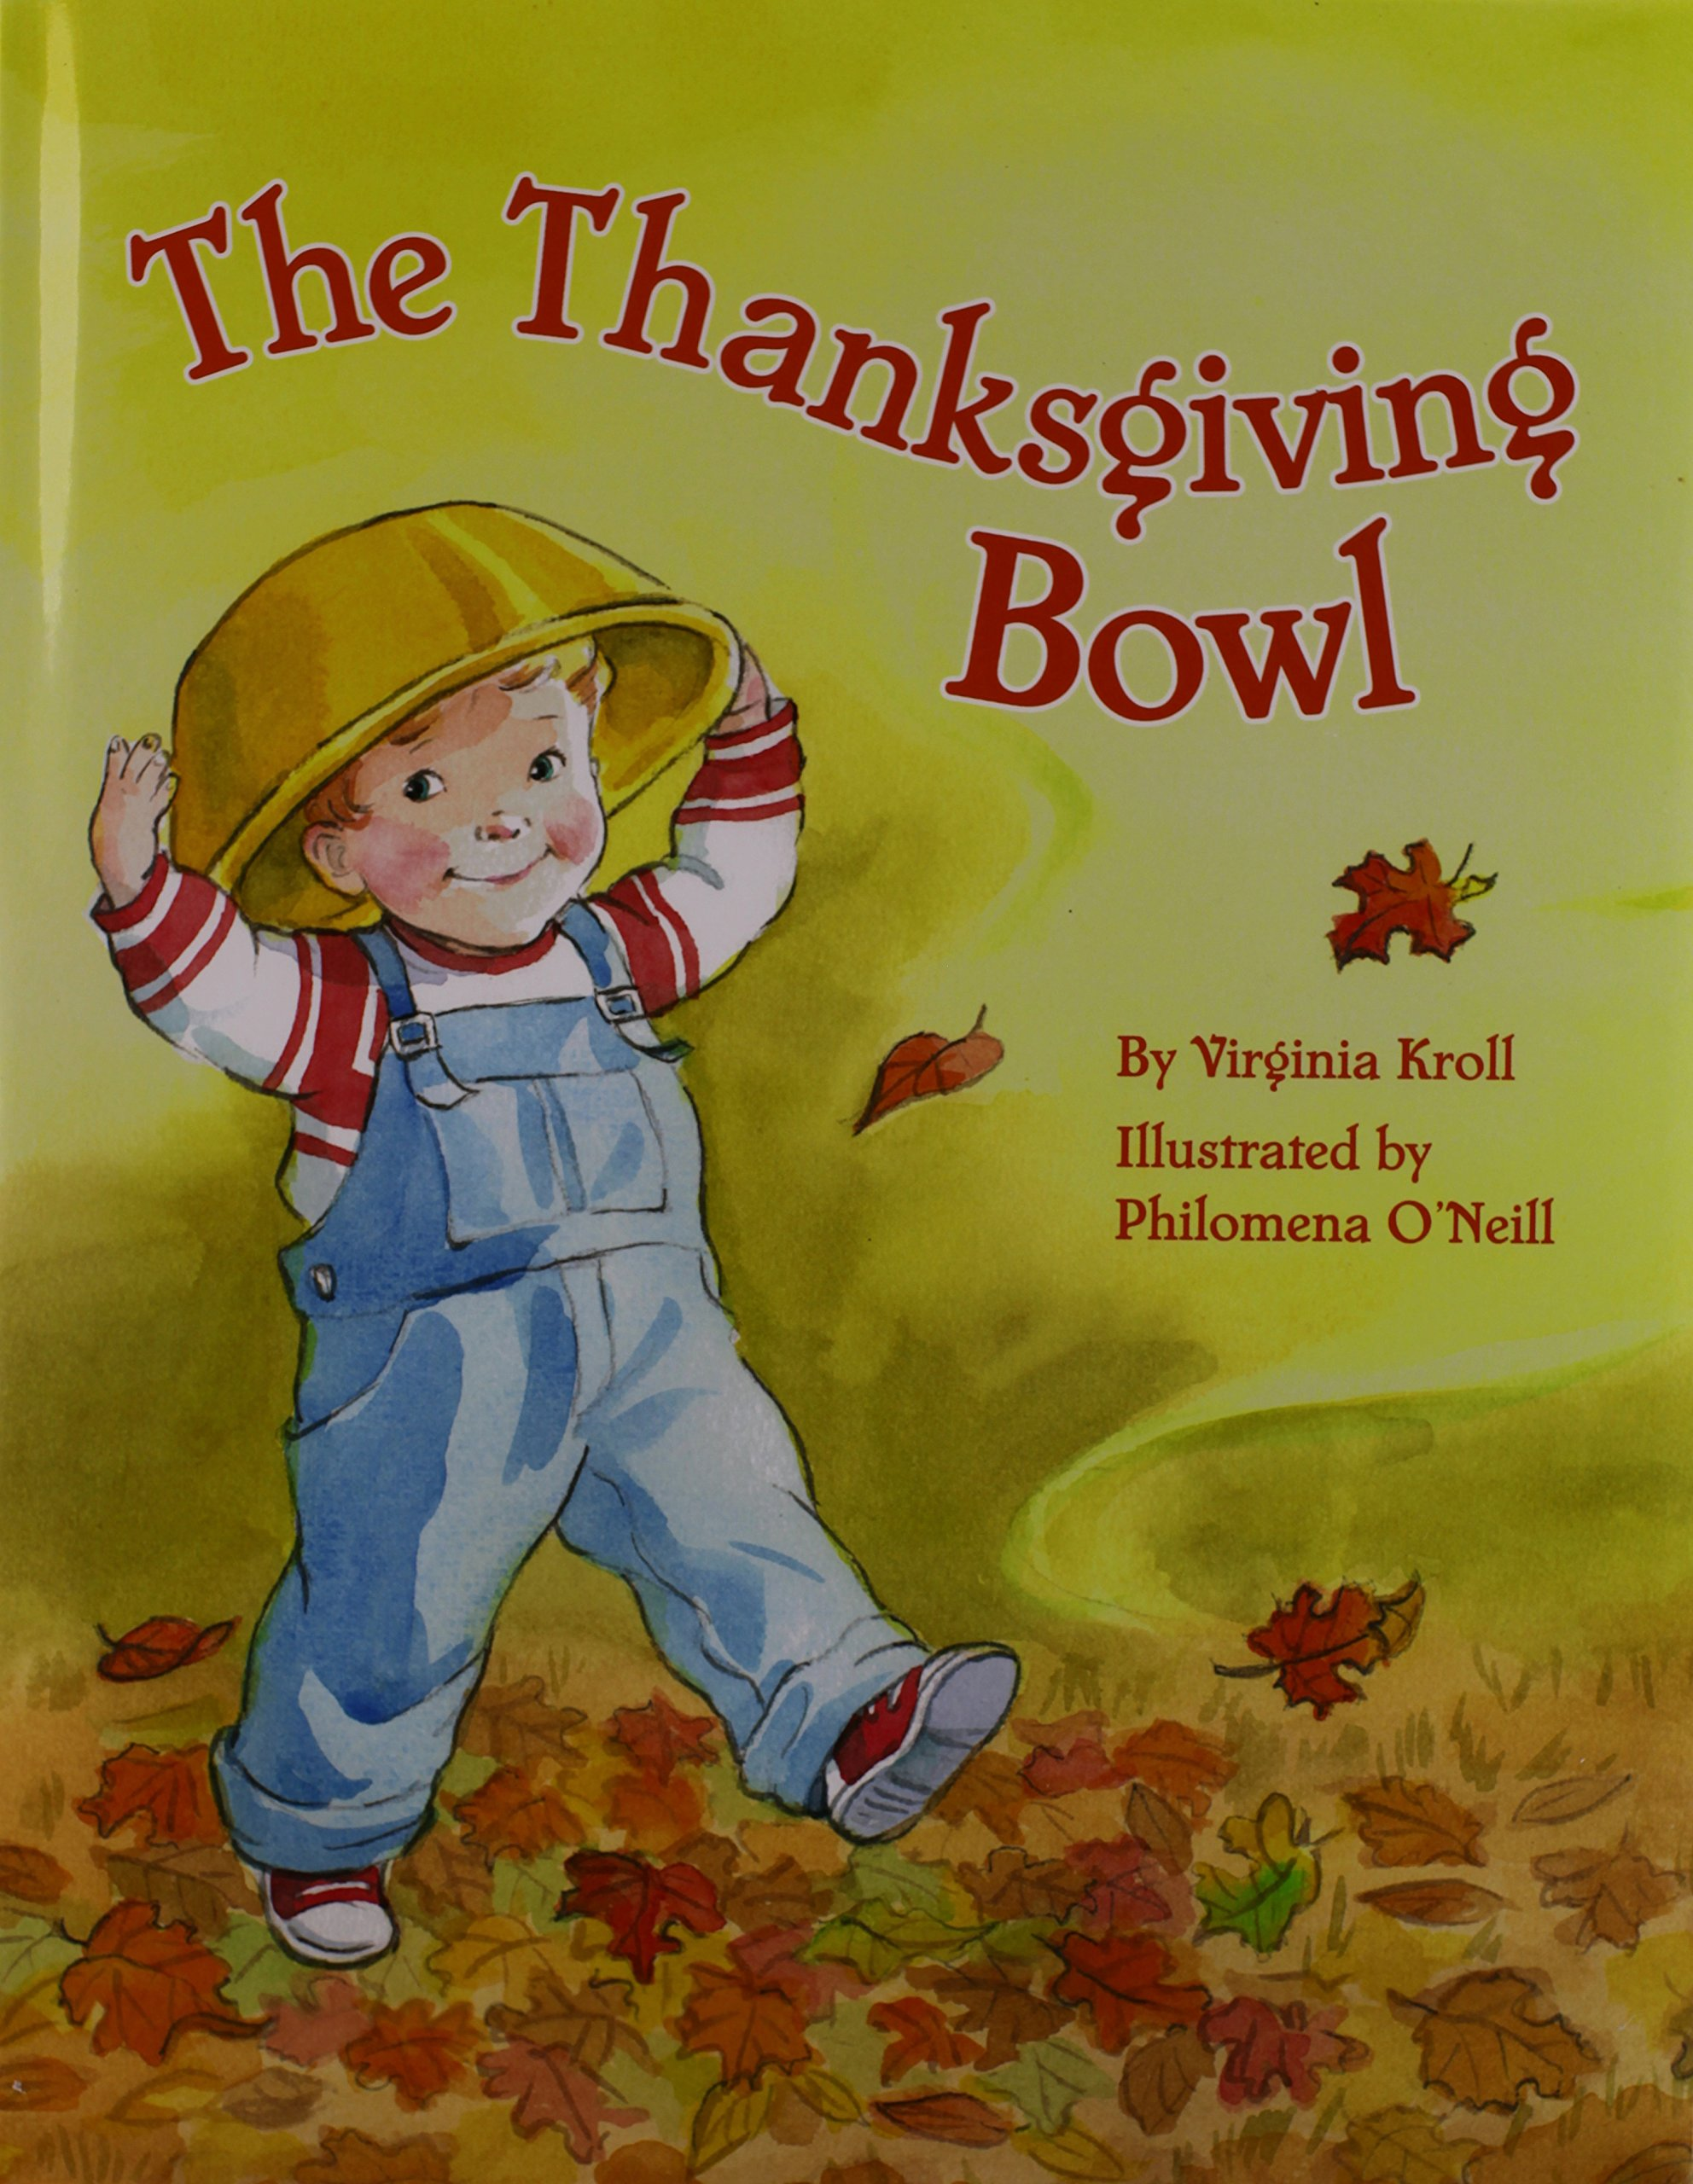 The Thanksgiving Bowl